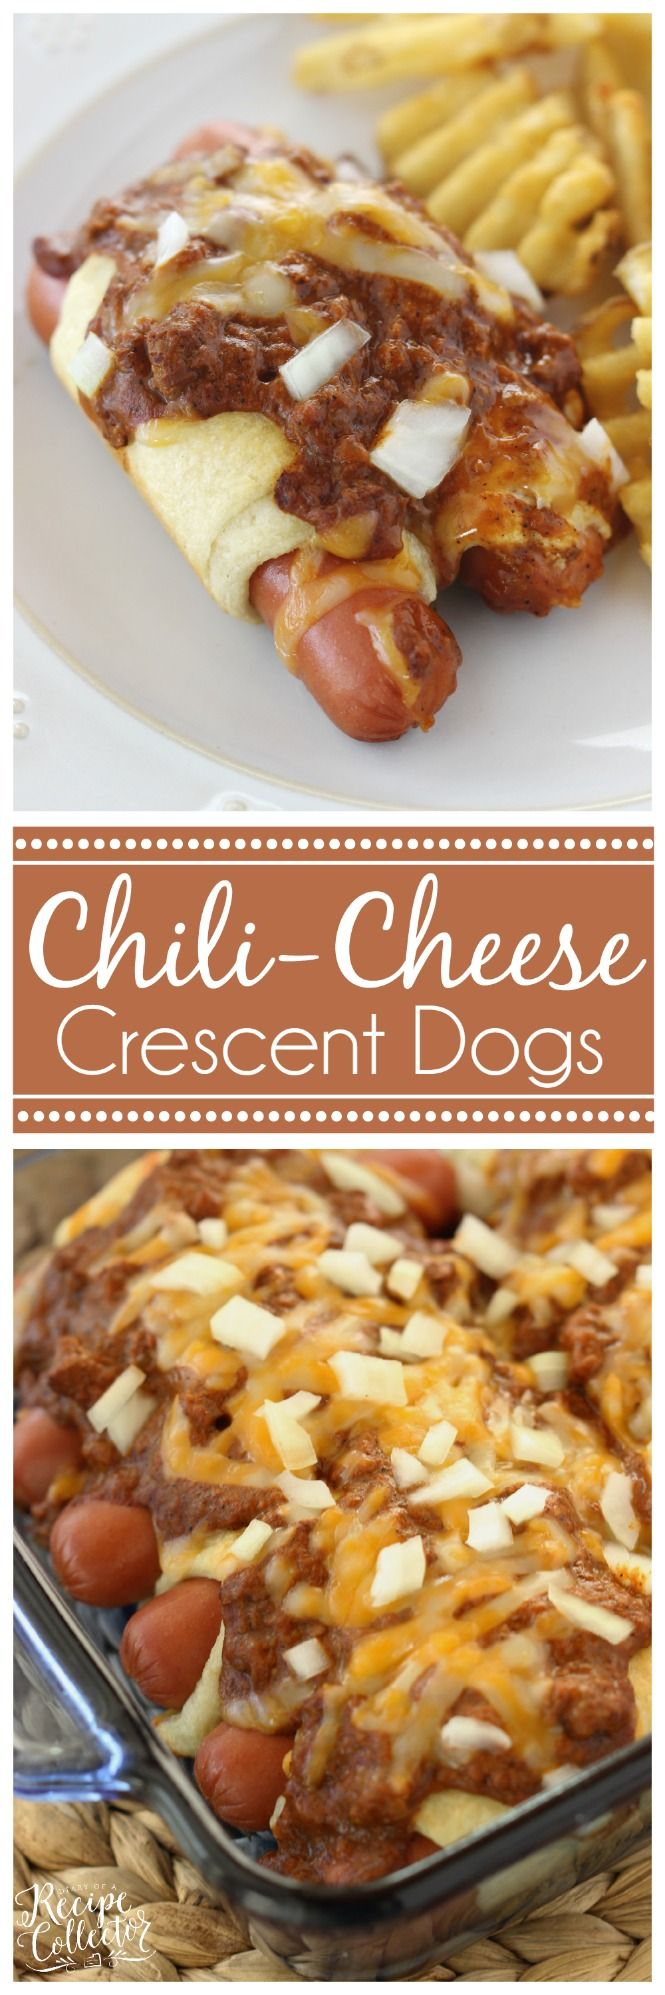 Chili Cheese Crescent Dogs ~ A super easy and very kid-friendly supper perfect for those busy weeknights!